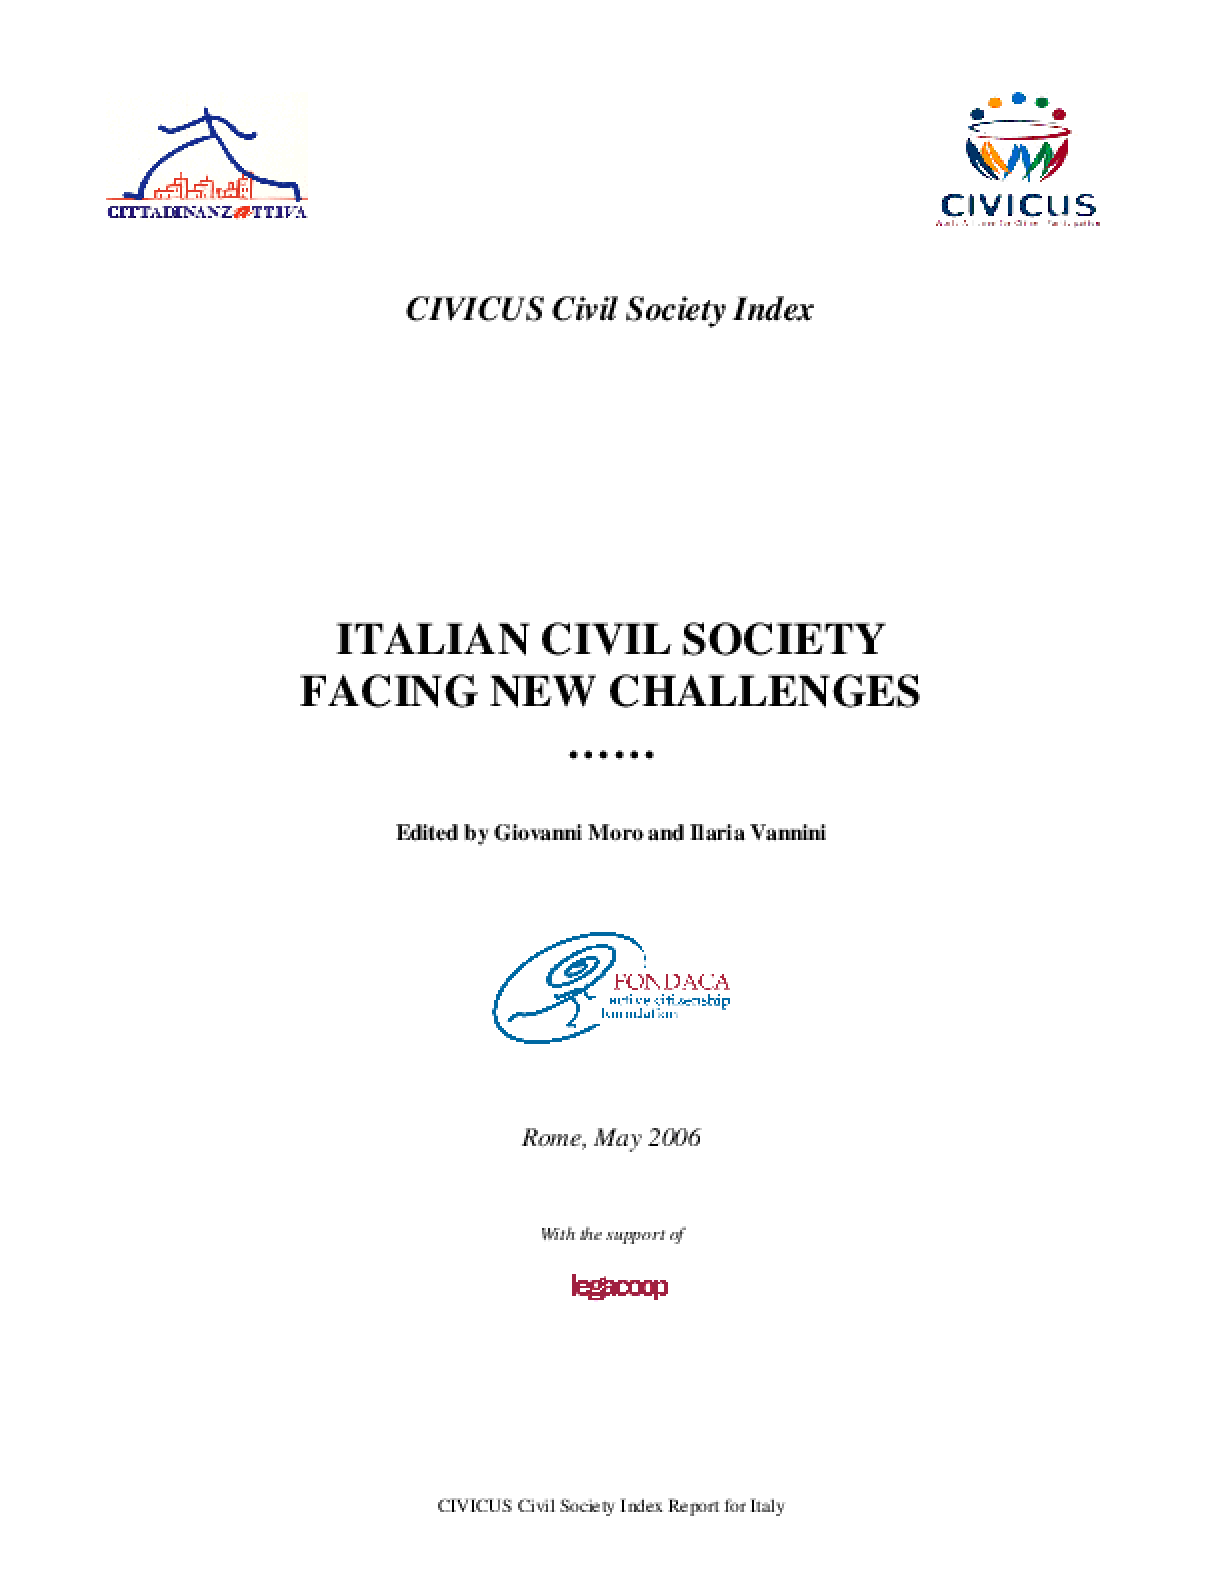 CIVICUS Civil Society Index Report For Italy: Italian Civil Cociety Facing New Challenges